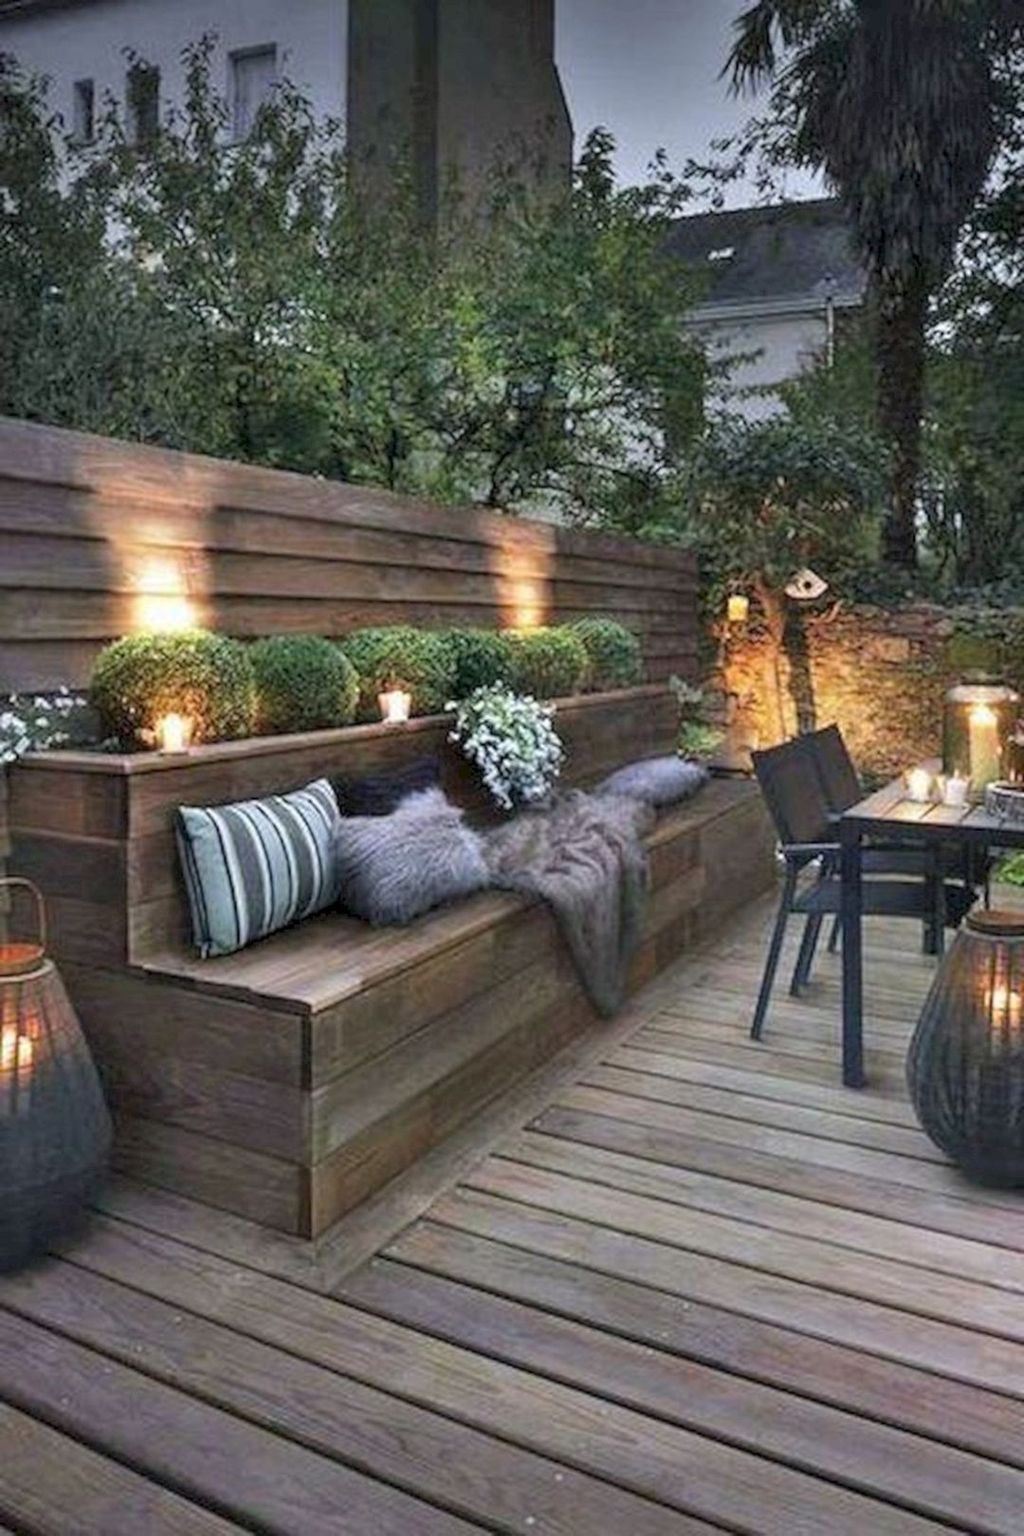 Admirable Cozy Patio Design Ideas To Relaxing On A Sunny Day 03